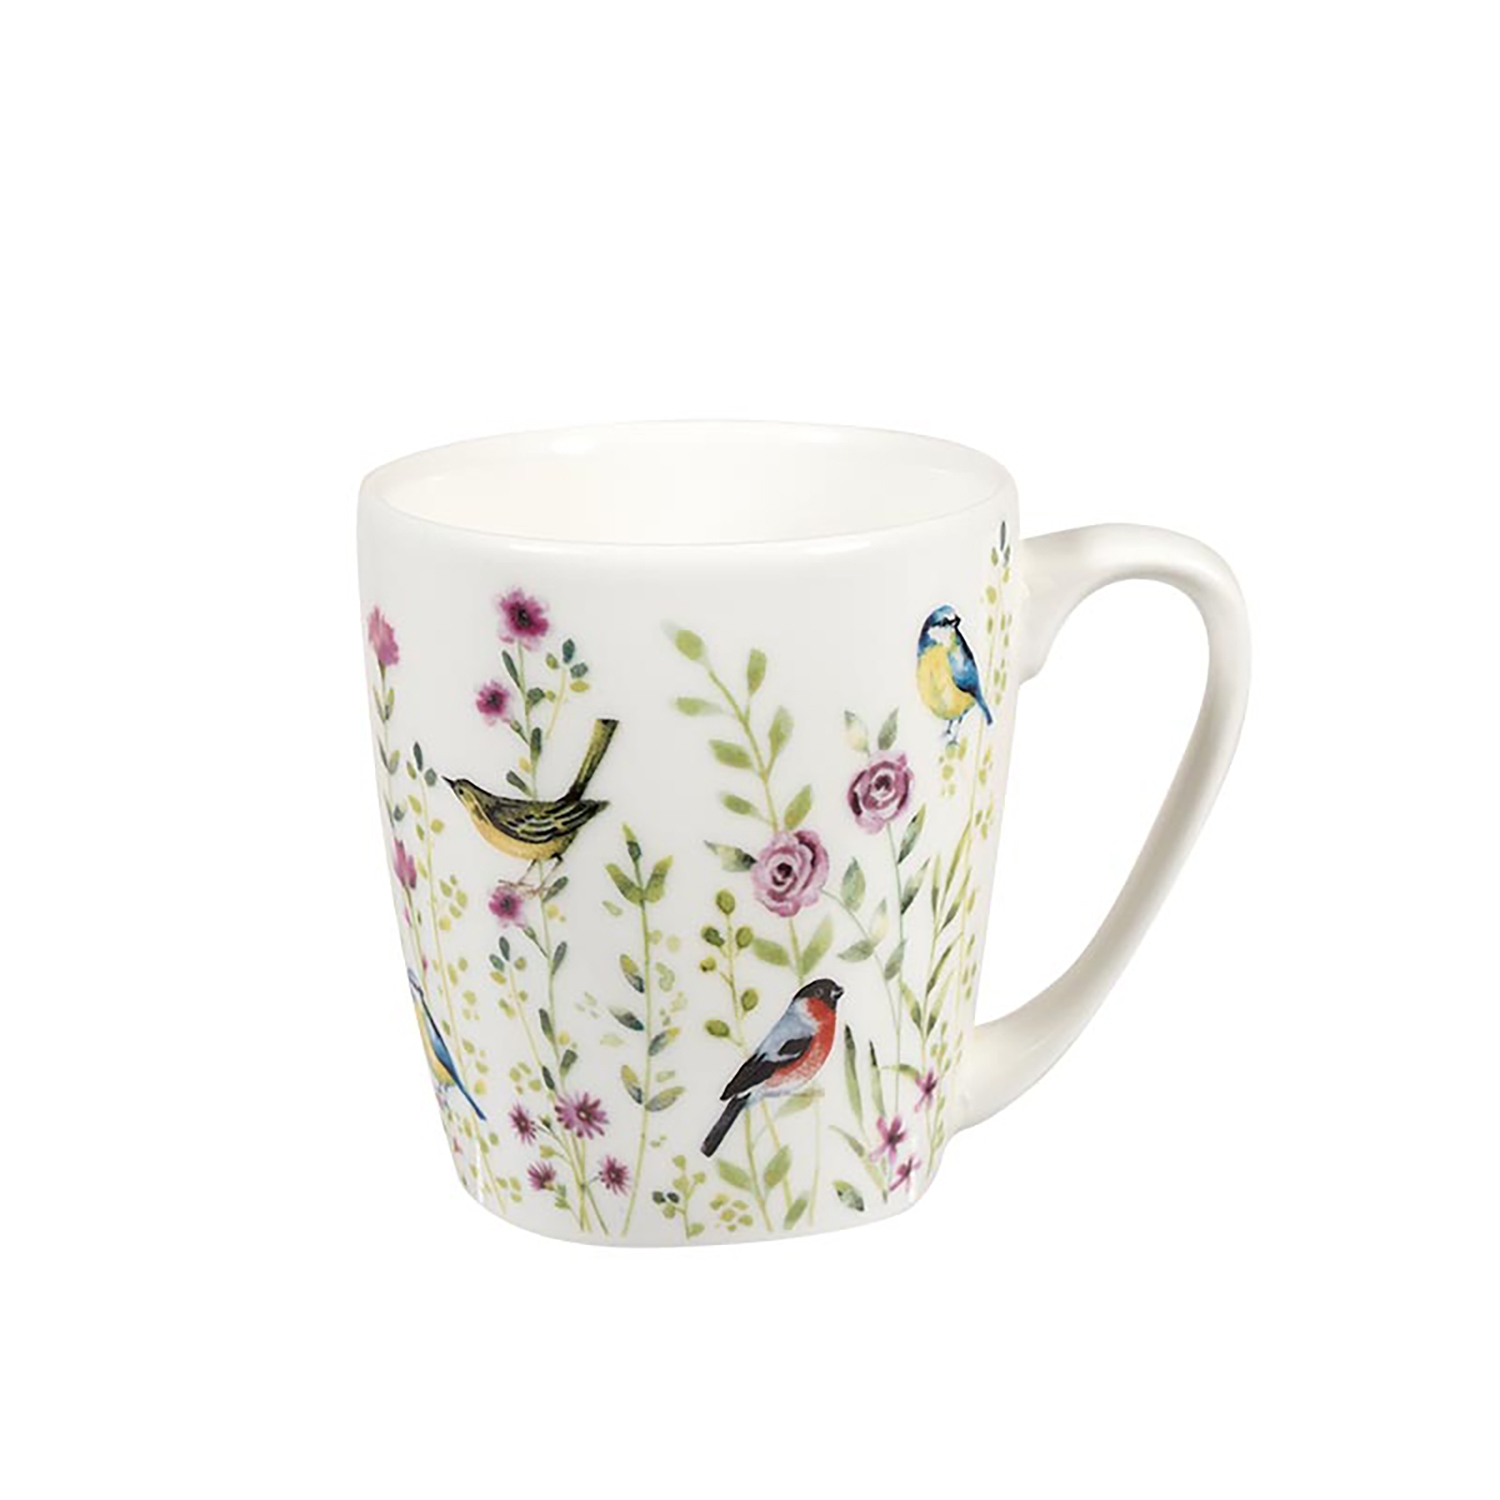 Image of Churchill China, Bird Watch Mug, White, 300ml